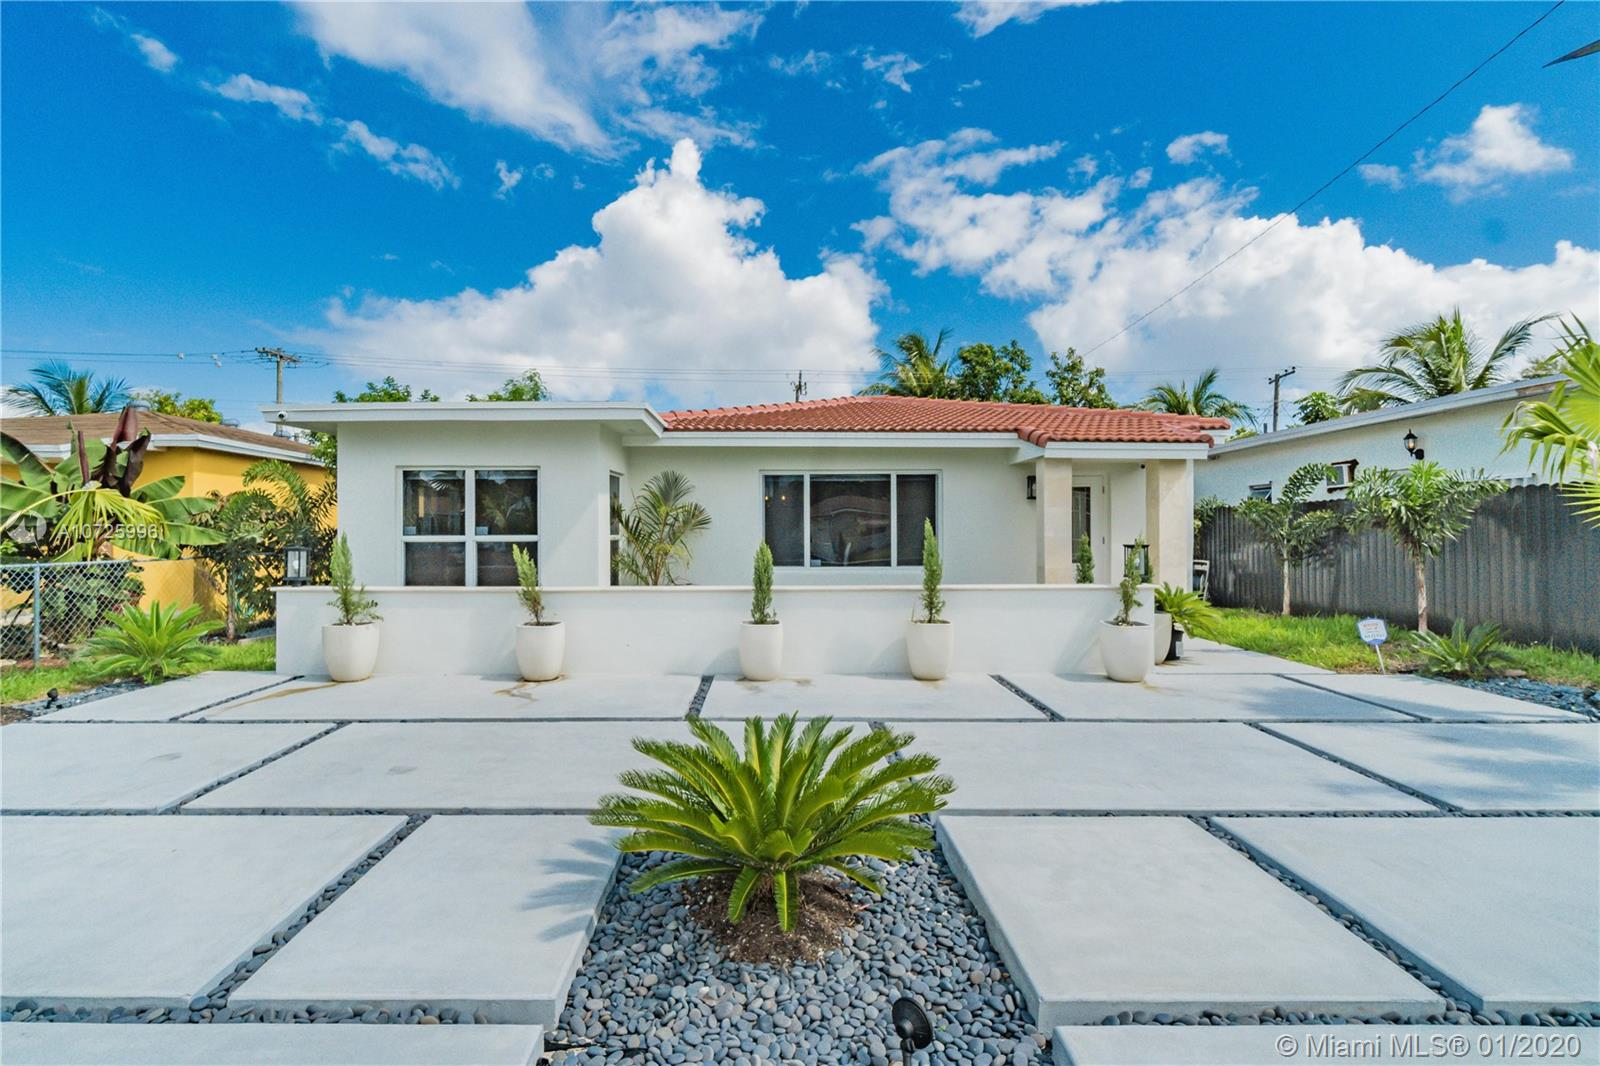 One of Miami Shores 3 Bedroom Homes for Sale at 1731 NE 172nd St